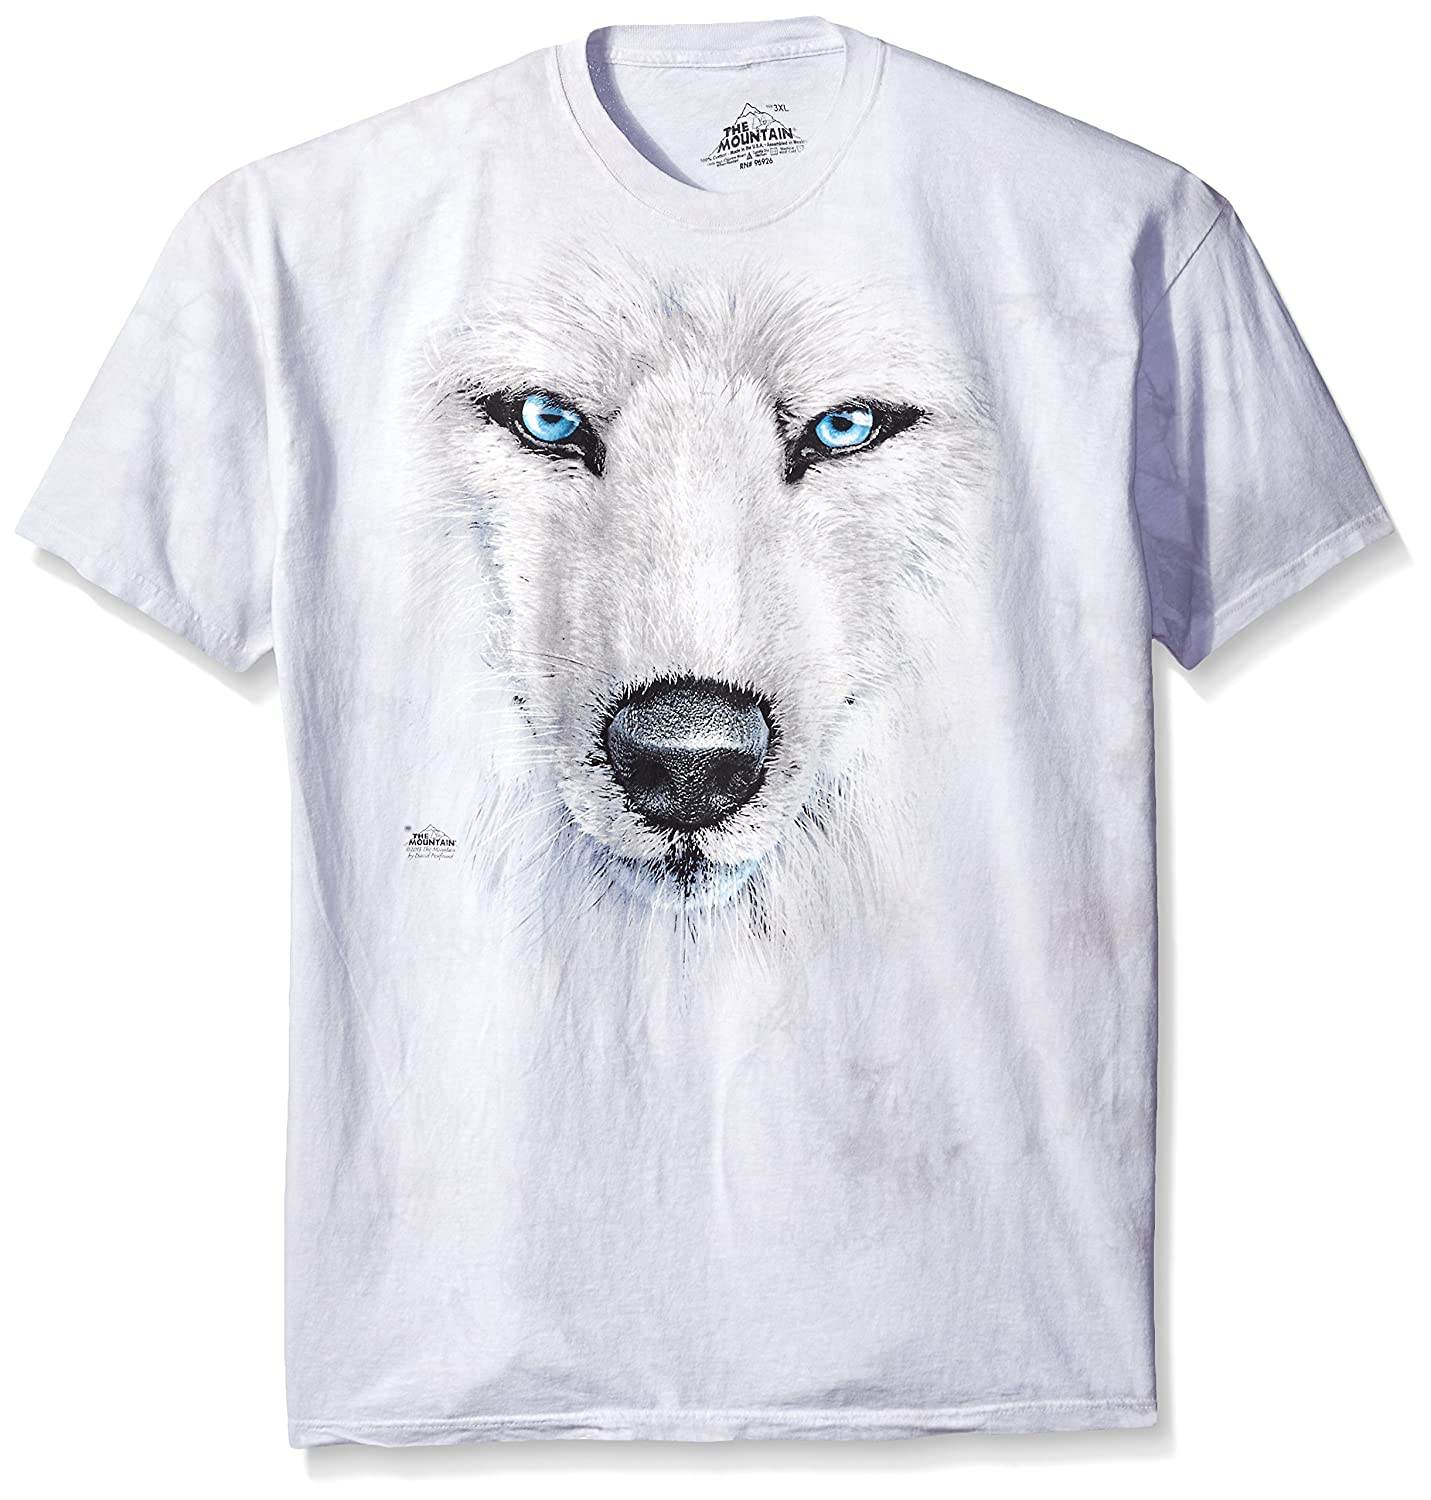 fafc2343ad86 The Mountain uses only environmentally friendly inks and dyes to bring you  a durable and comfortable top. Created